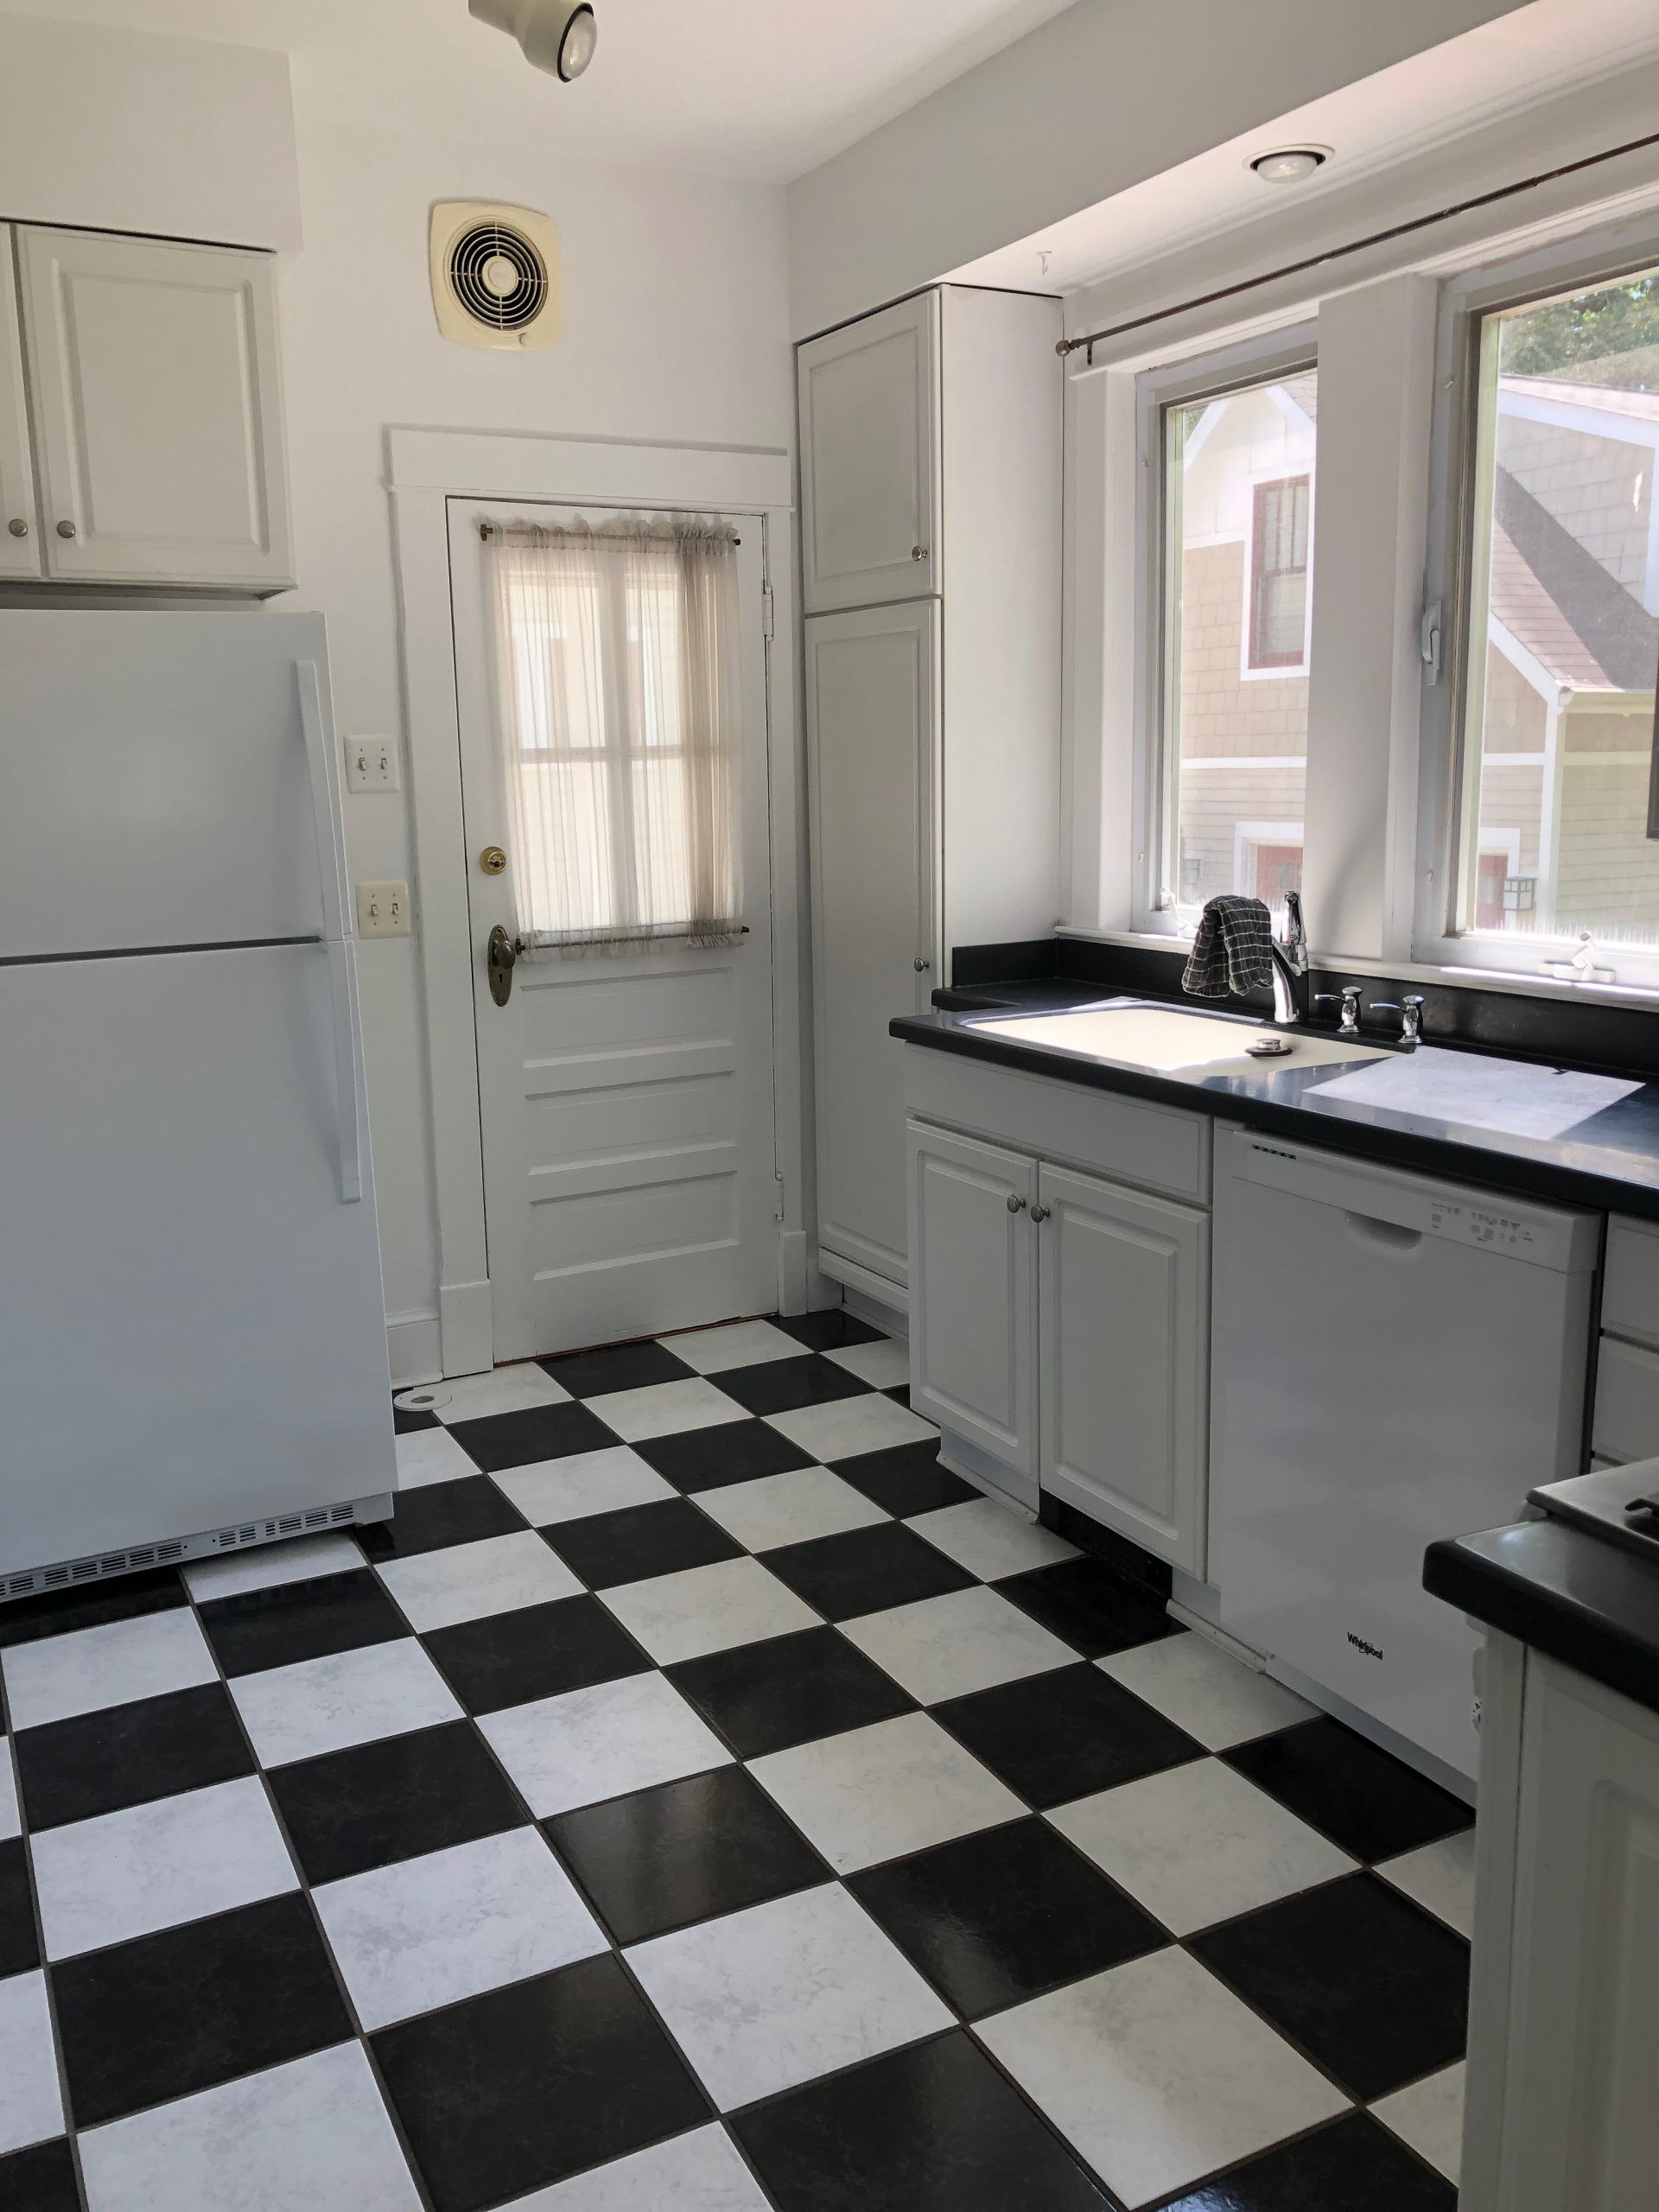 checkerboard floor in kitchen